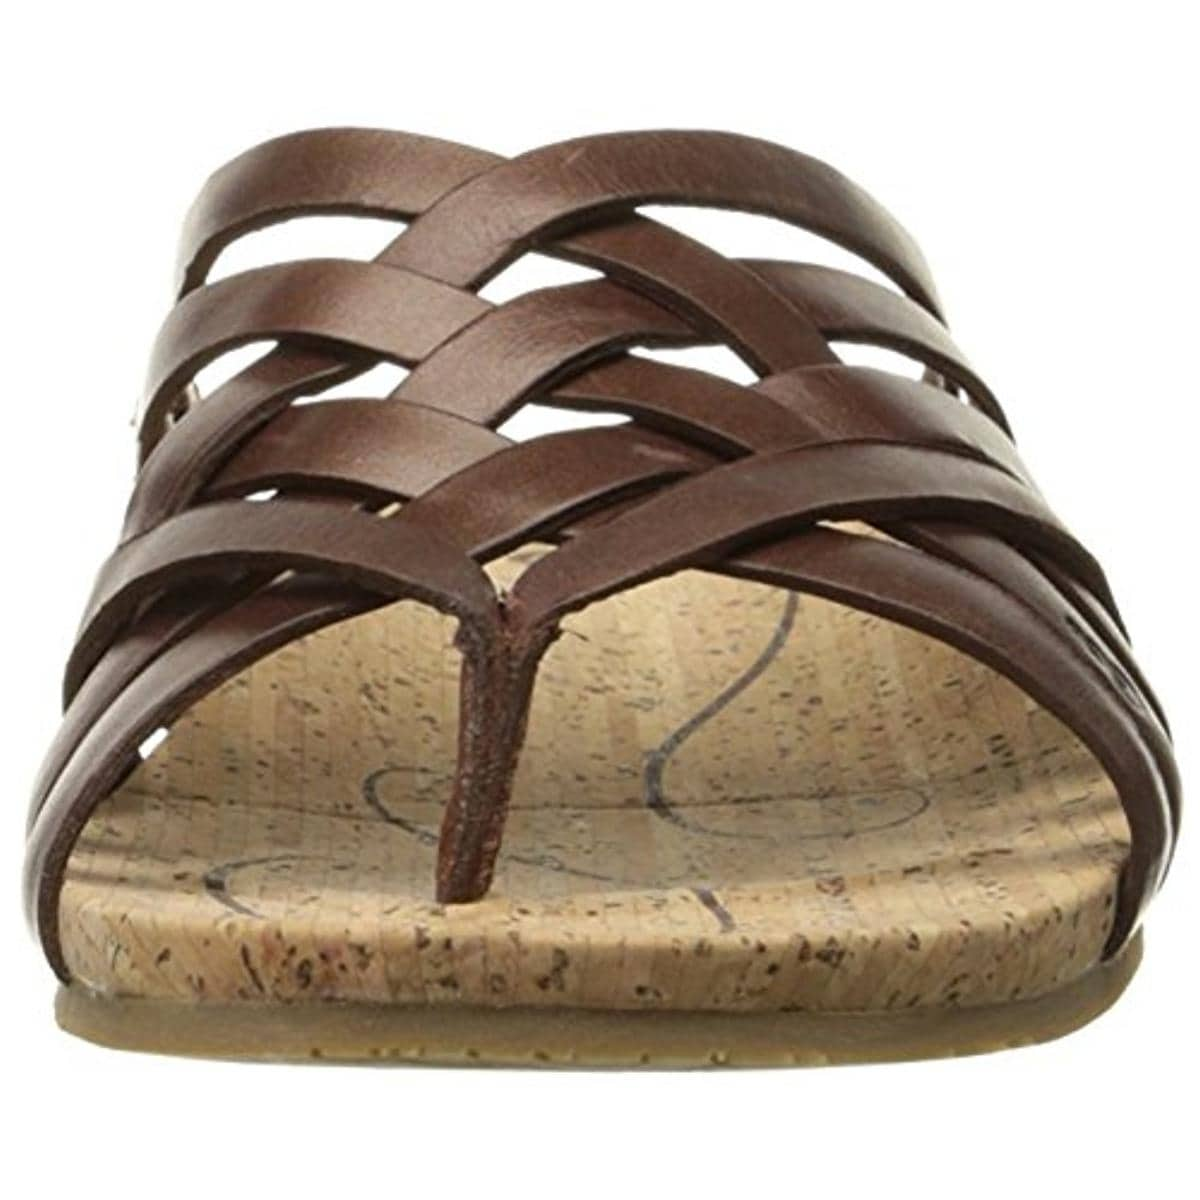 2938b2a39675 Shop Ahnu Womens Maia Thong Sandals Leather Crossover - Ships To Canada -  Overstock.ca - 13379096